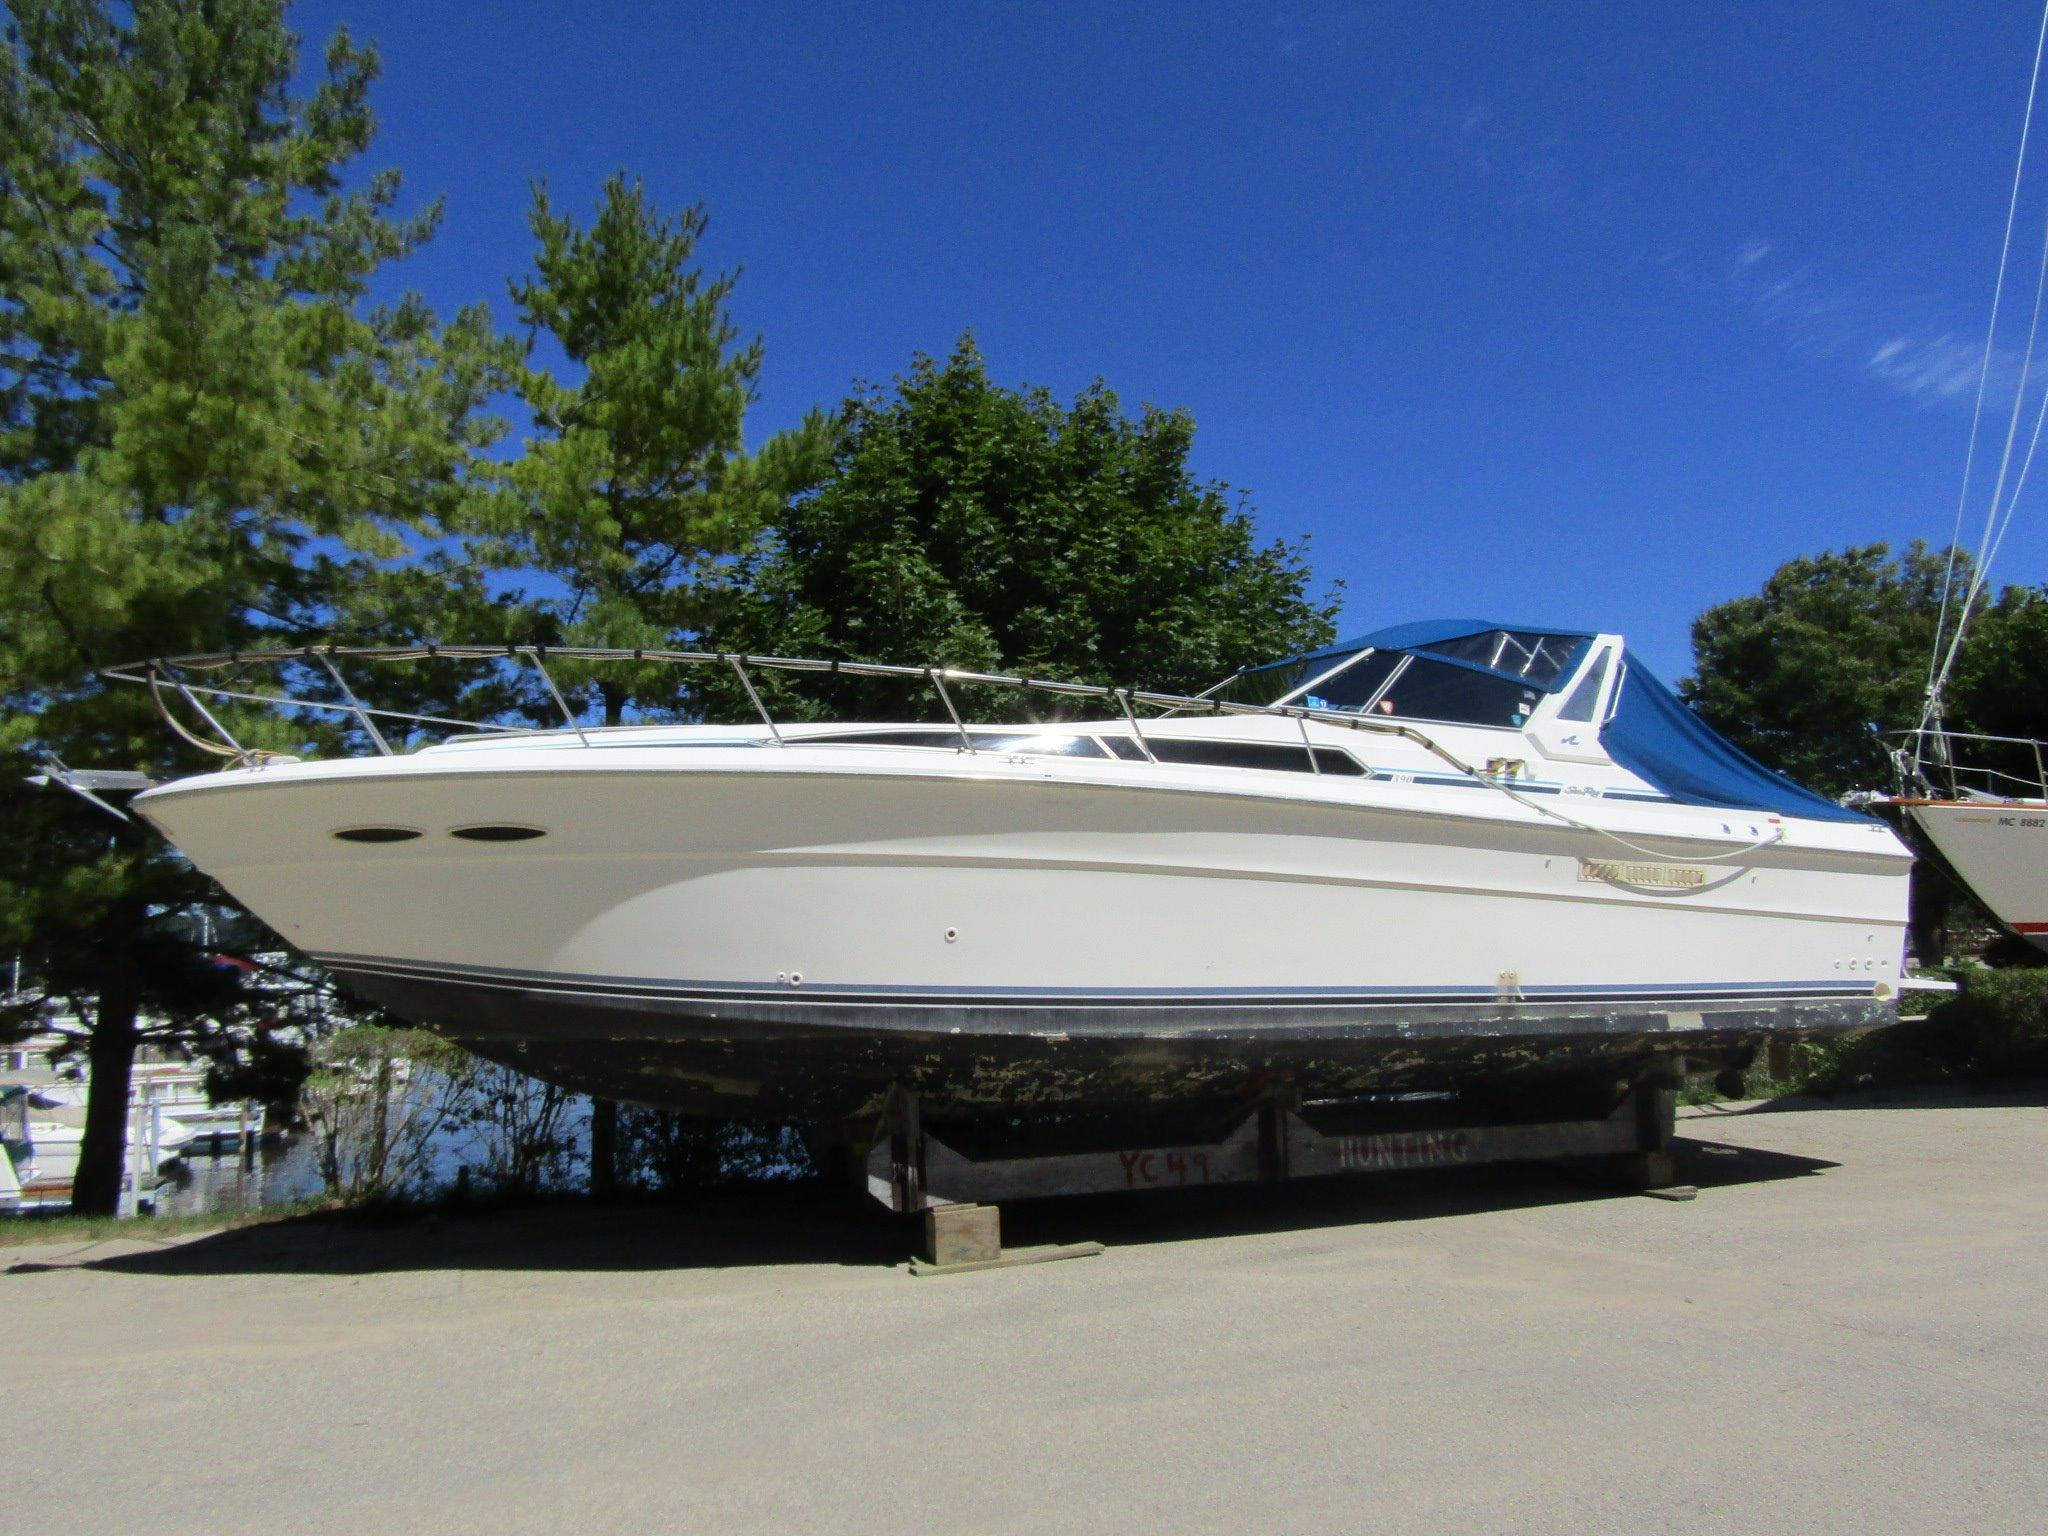 Saugatuck (MI) United States  city pictures gallery : 1990 Sea Ray 390 Express Cruiser Power Boat For Sale www.yachtworld ...